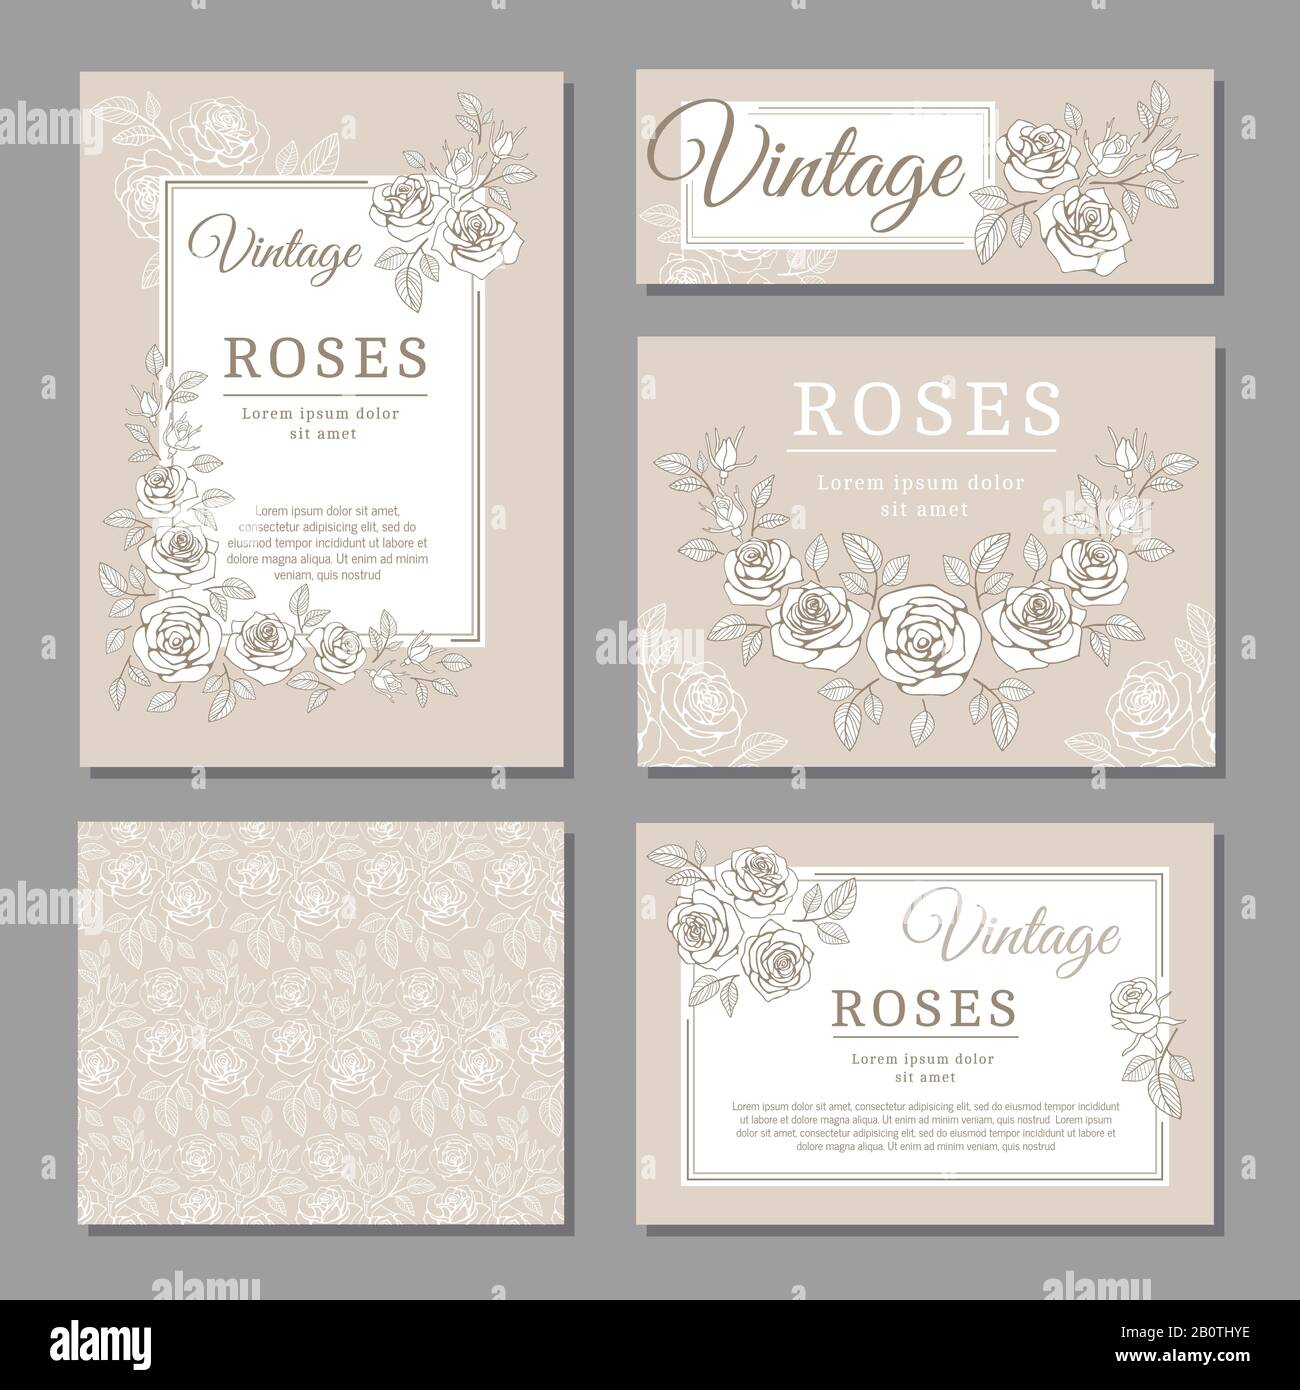 Classic Wedding Vintage Invitation Cards With Roses And Floral Elements Vector Templates Invitation Card Wedding With Floral Vintage Pattern Illustration Stock Vector Image Art Alamy